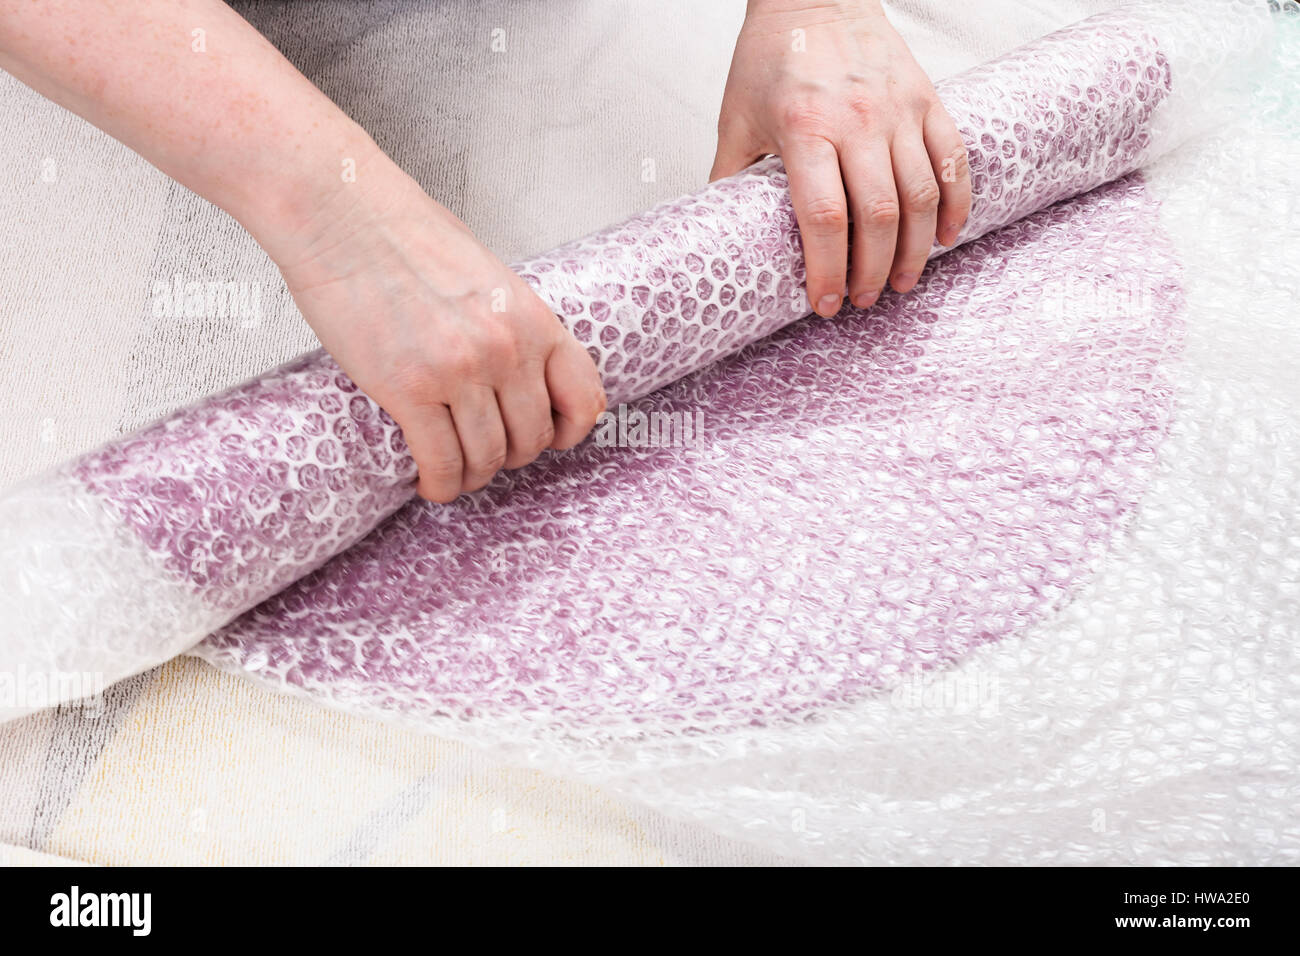 workshop of manufacturing of felt for beret in wet felting process - hatter rolls the wool fibers with hat layout - Stock Image